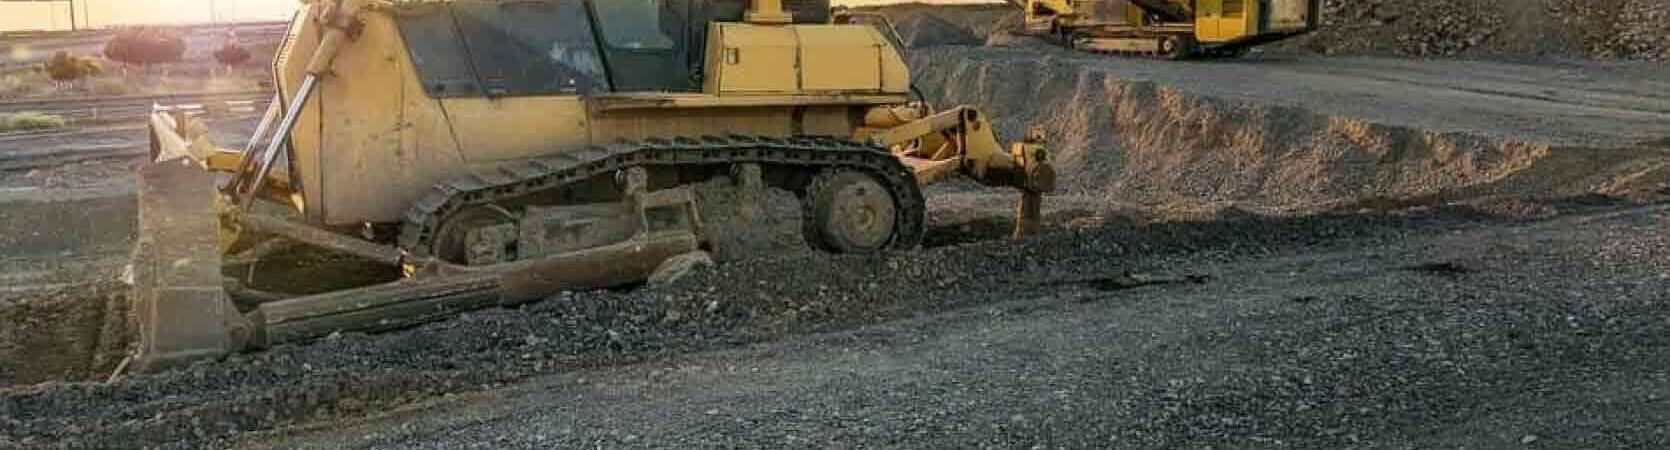 Some heavy machinery that might need some control system modernization services